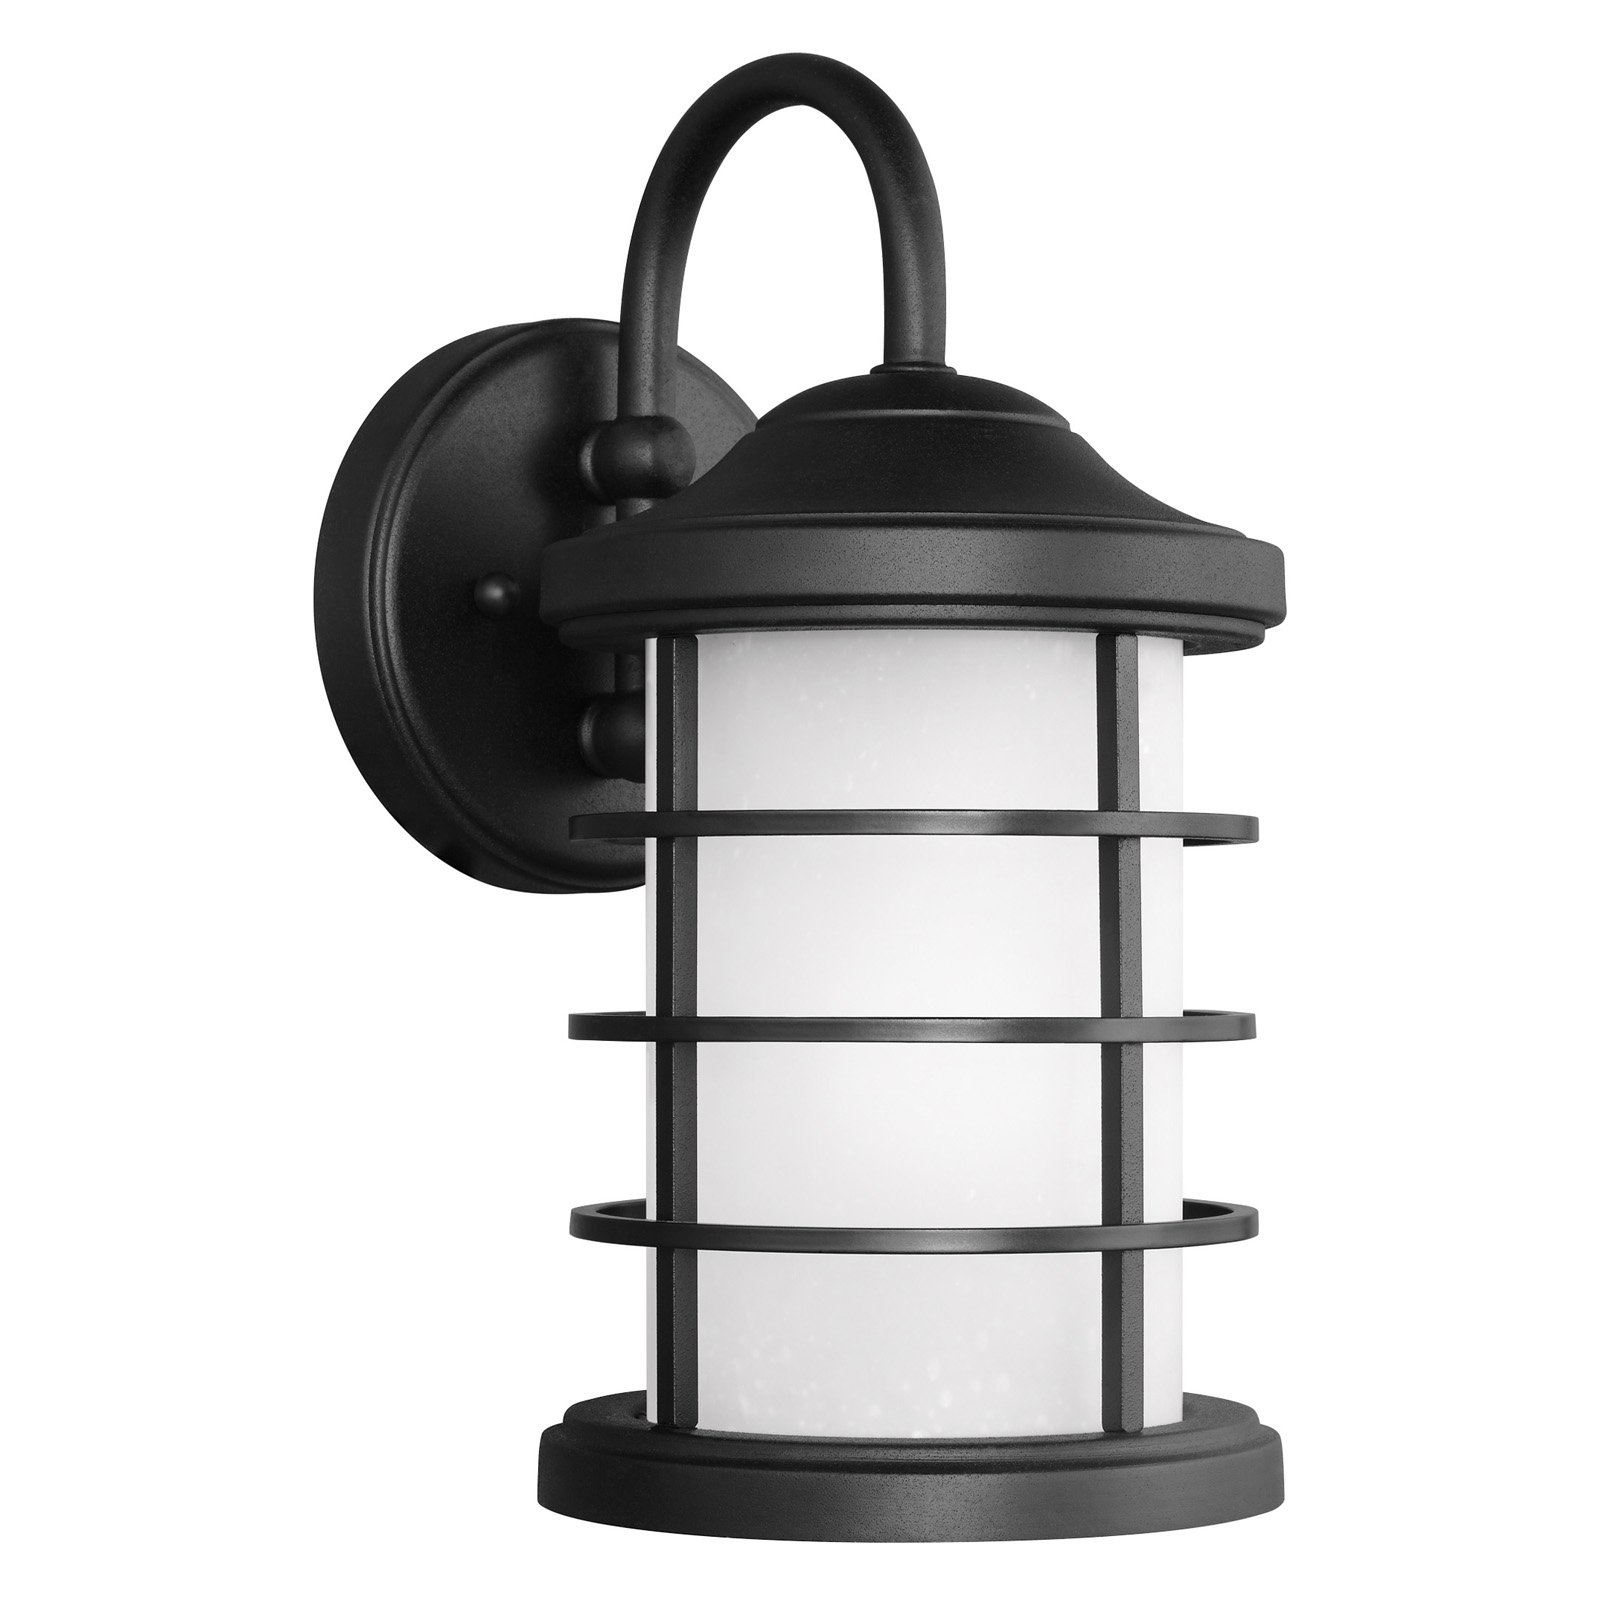 Sea Gull Lighting Sauganash 8524451EN Outdoor Wall Lantern